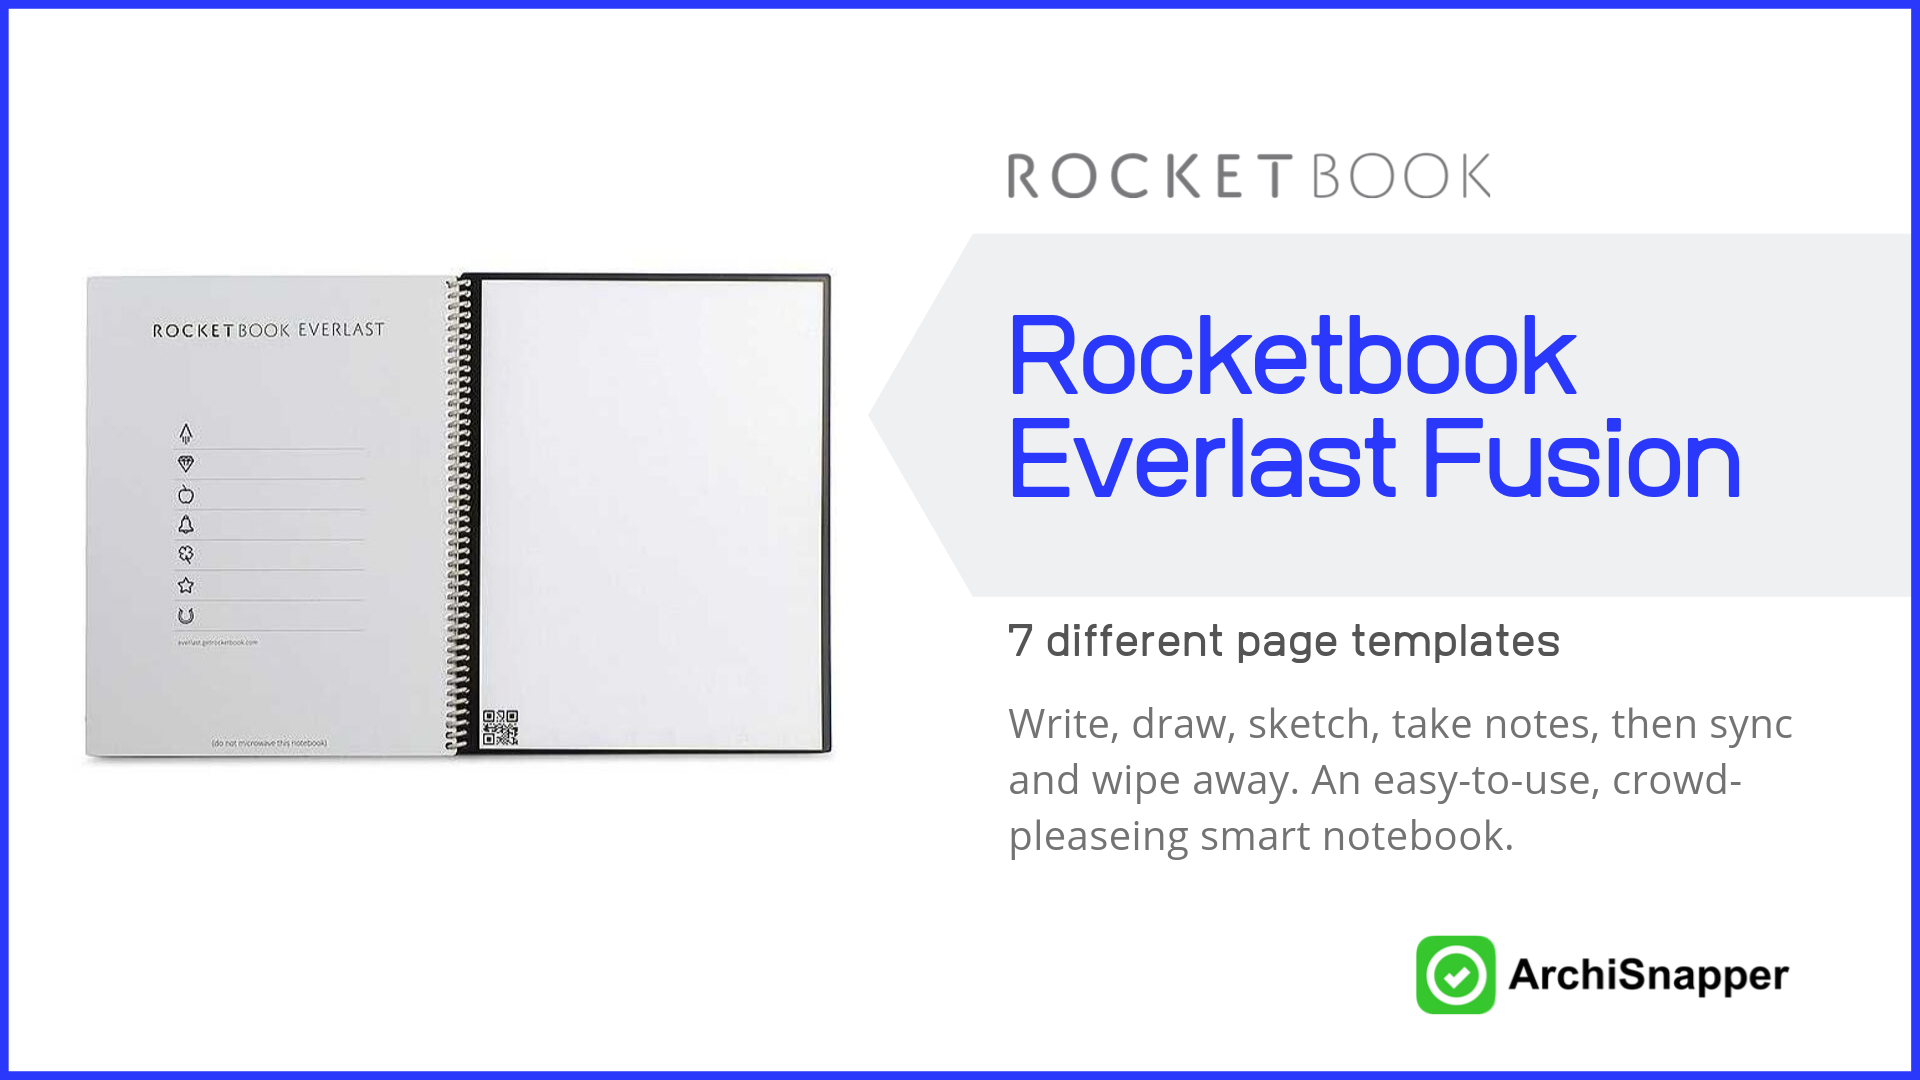 Rocketbook Everlast Fusion | List of the 15 must-have tech tools and accessories ideal for architects presented by Archisnapper